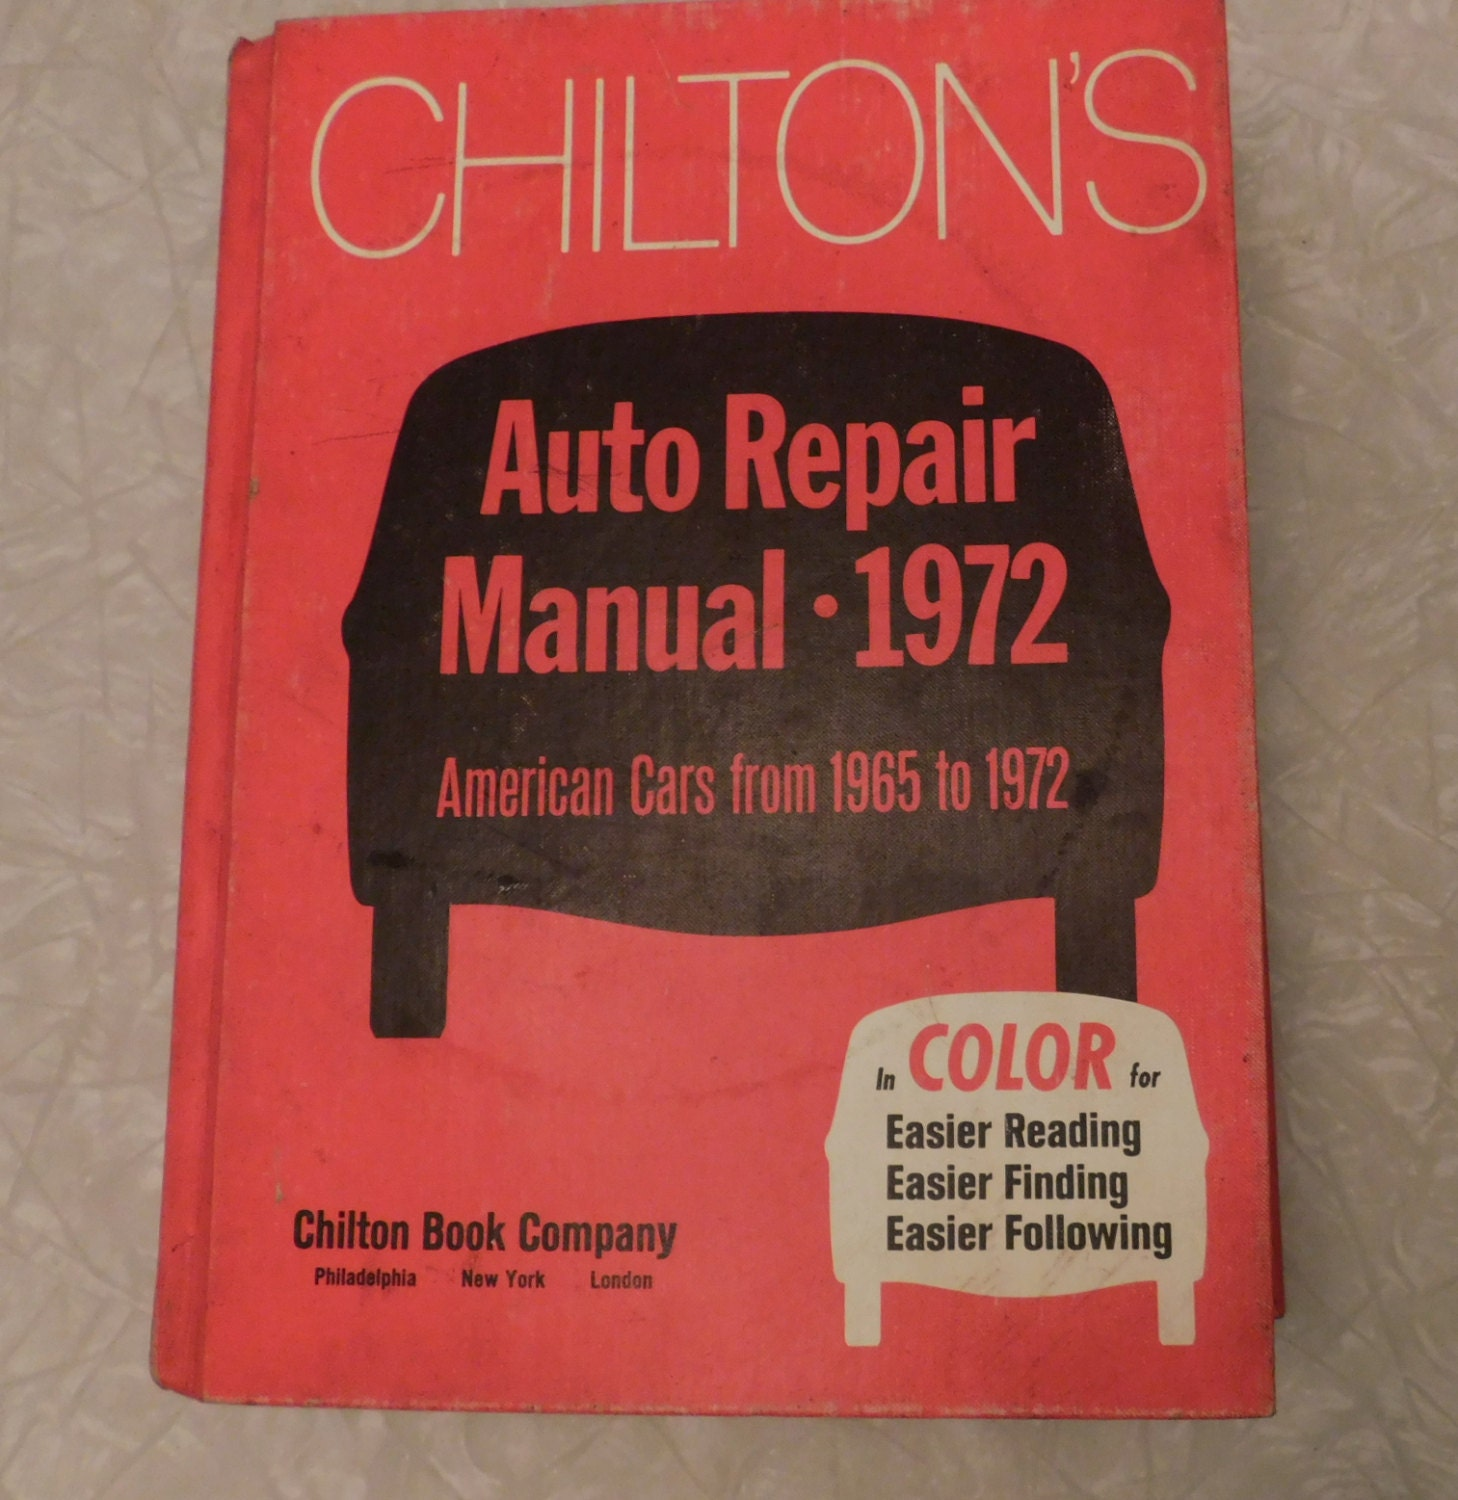 chilton s auto repair manual 1972  american cars 1965 1972 Transit Manuals Bus Speciufication M1aintenance 2980 X Weight System Manual